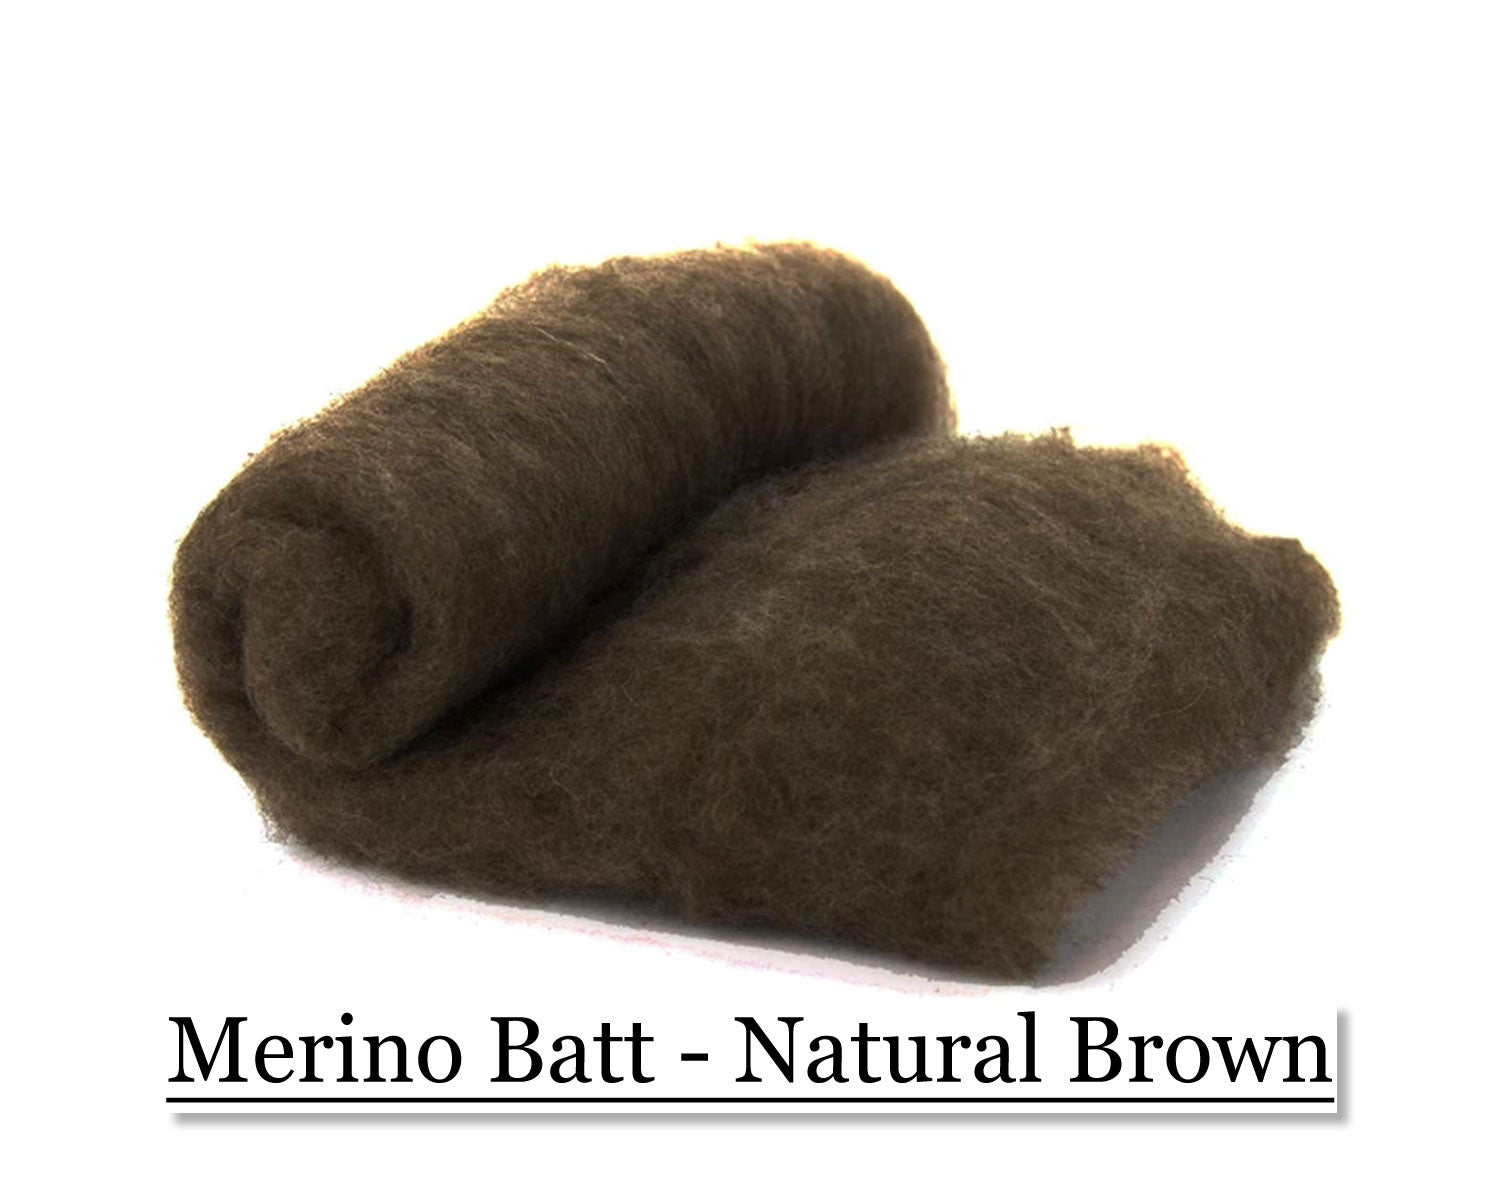 Merino Batt - Natural Brown - 200 grams